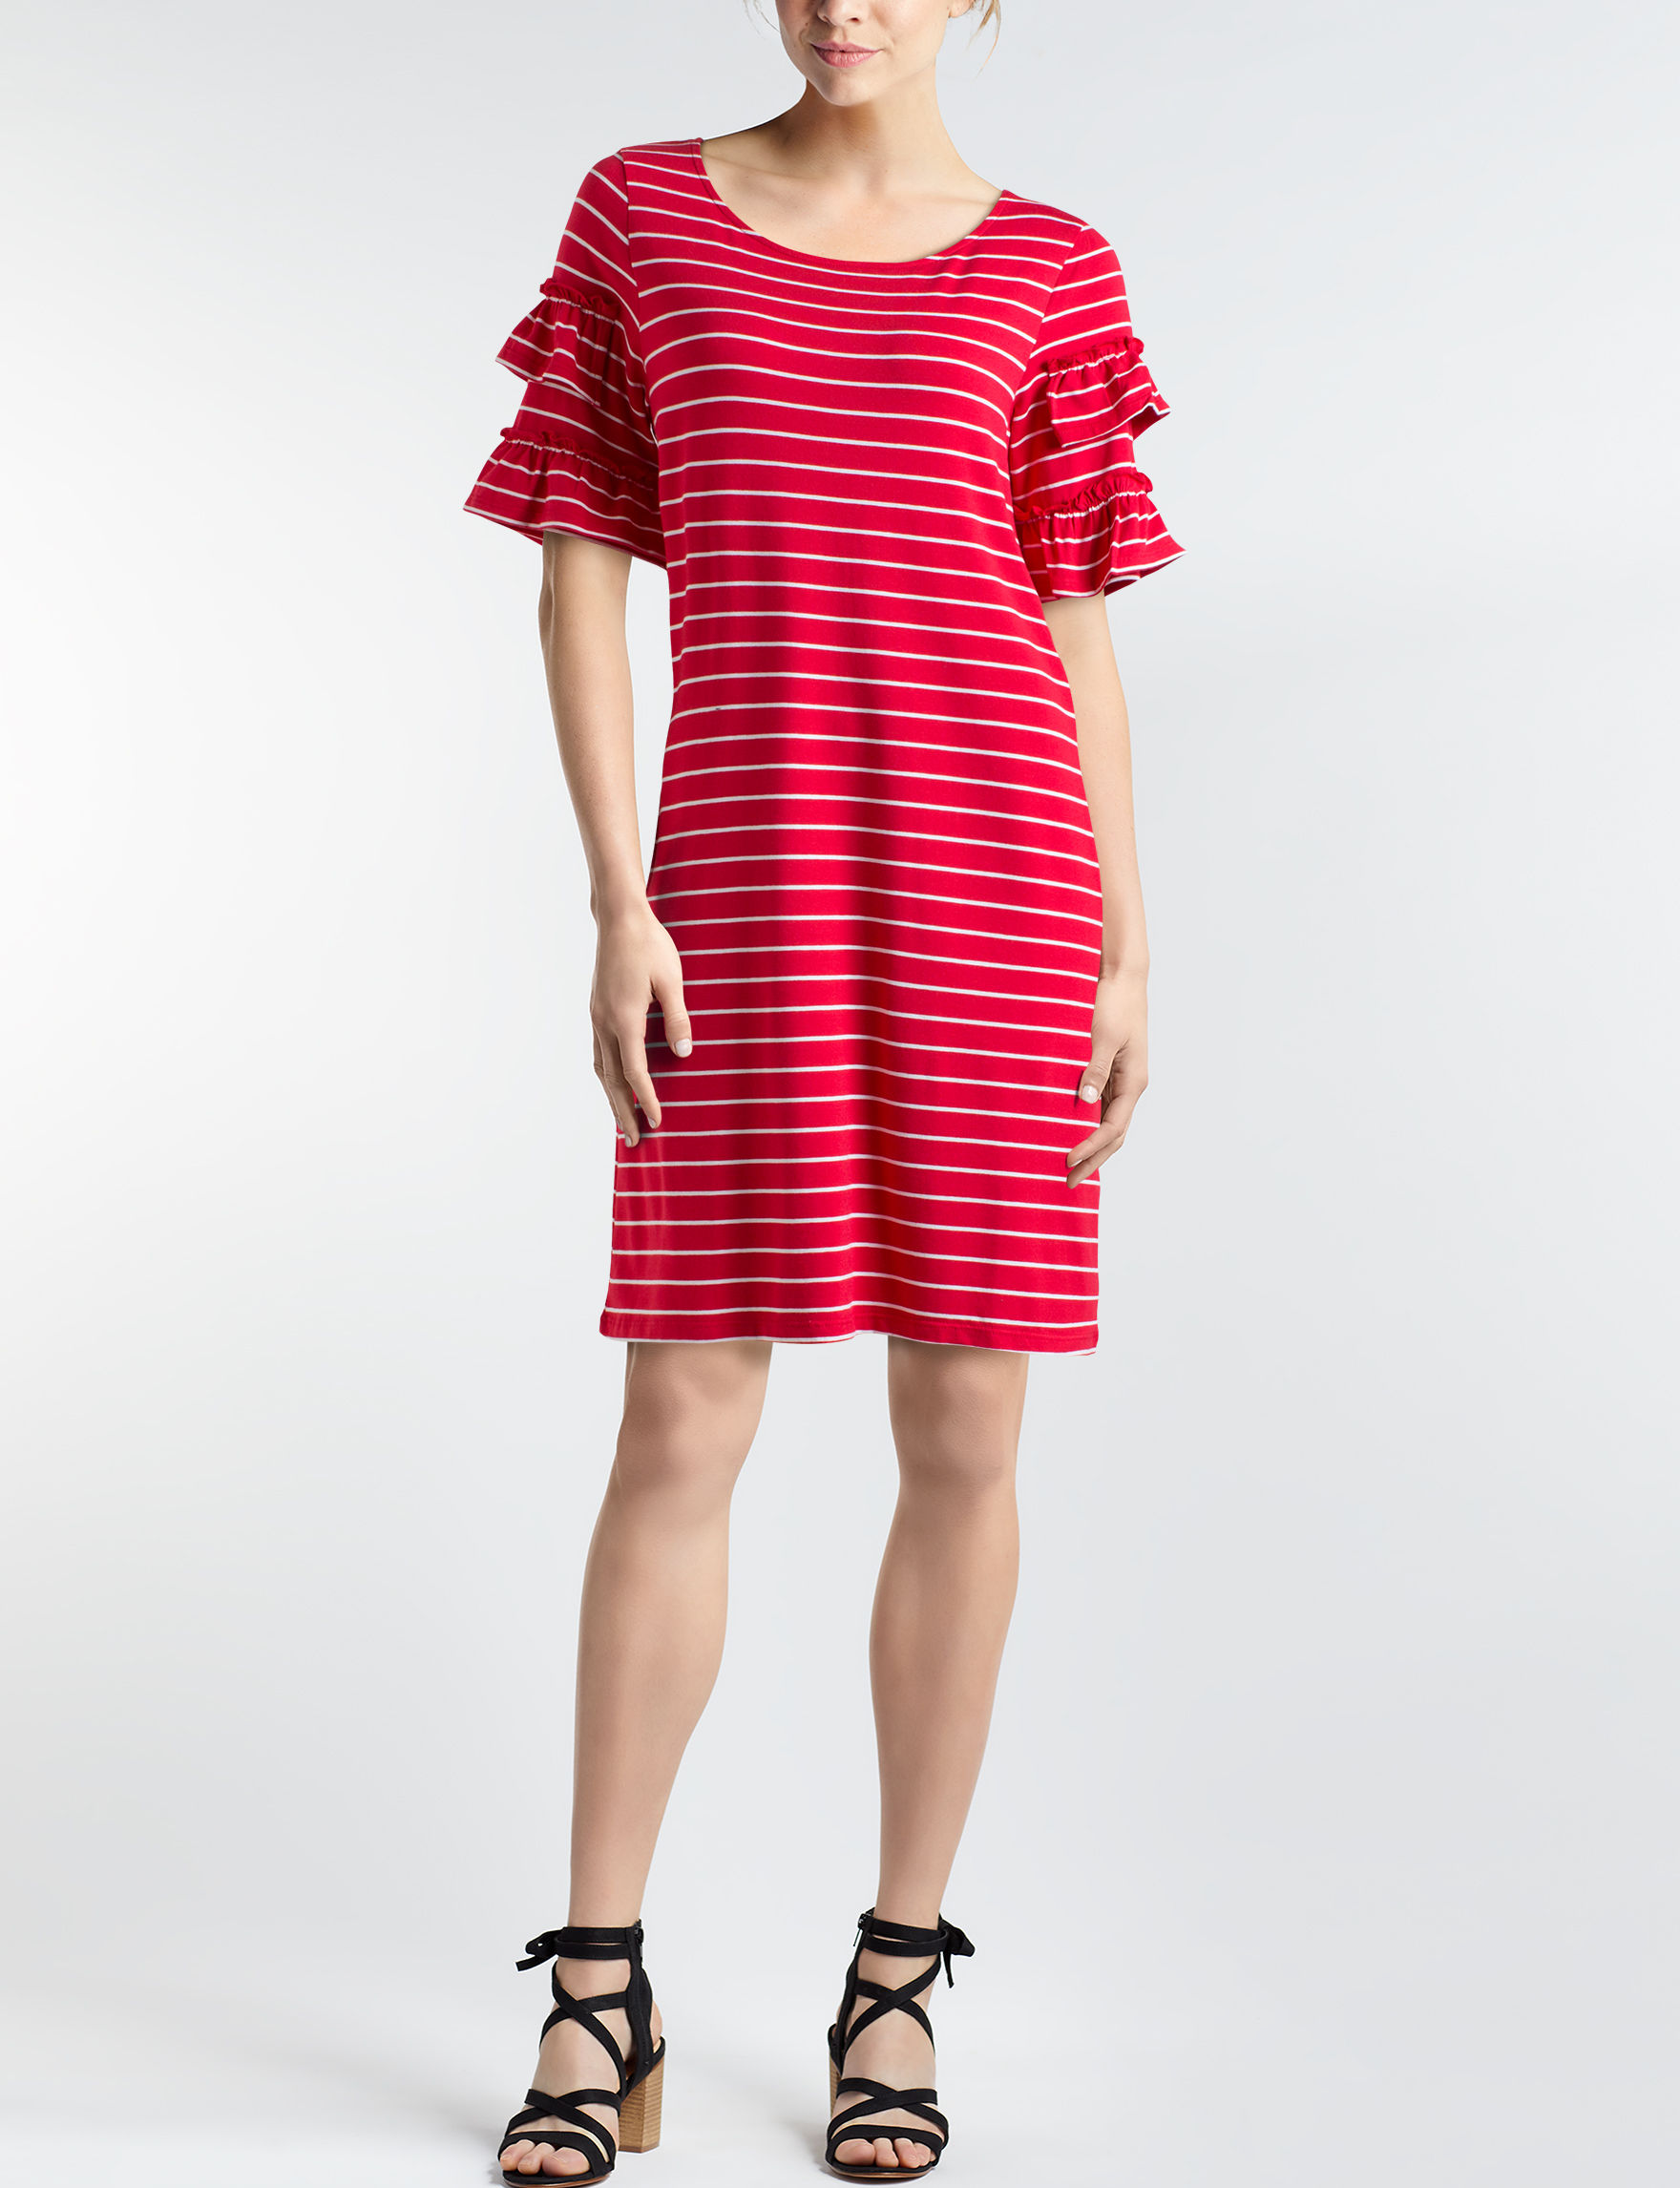 August Silk Red Everyday & Casual